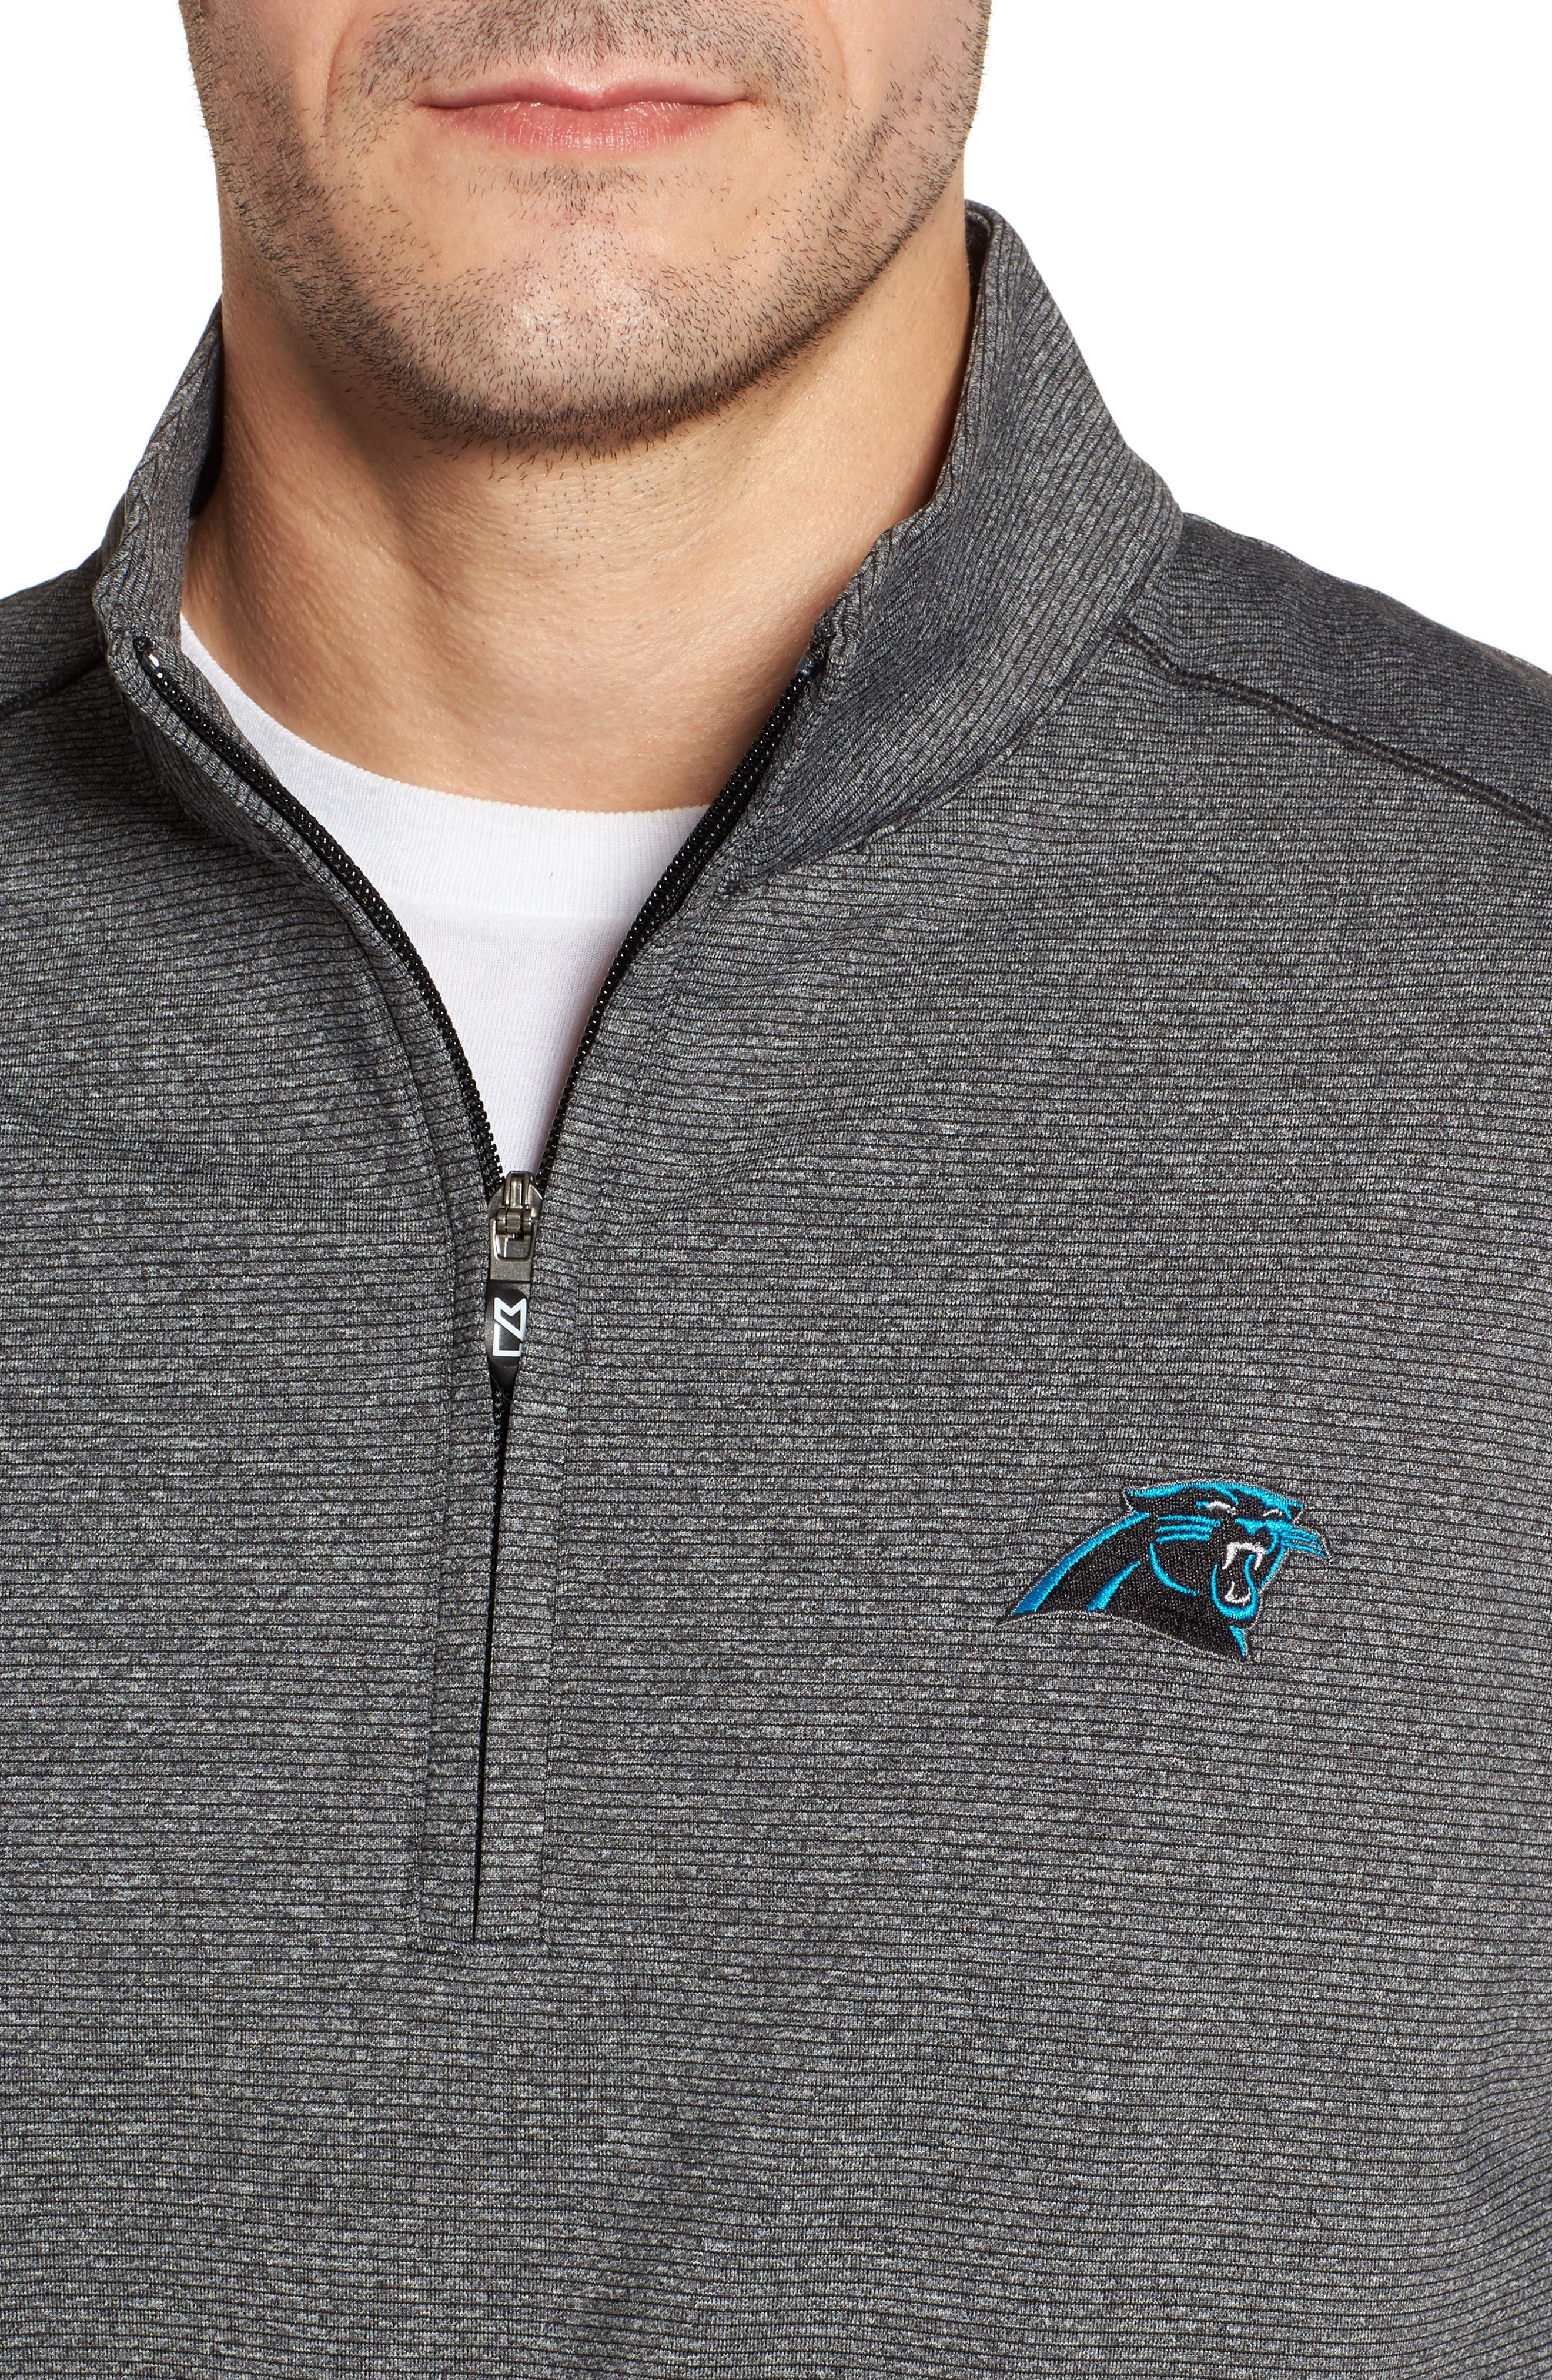 Shoreline - Carolina Panthers Half Zip Pullover,                             Alternate thumbnail 4, color,                             Charcoal Heather